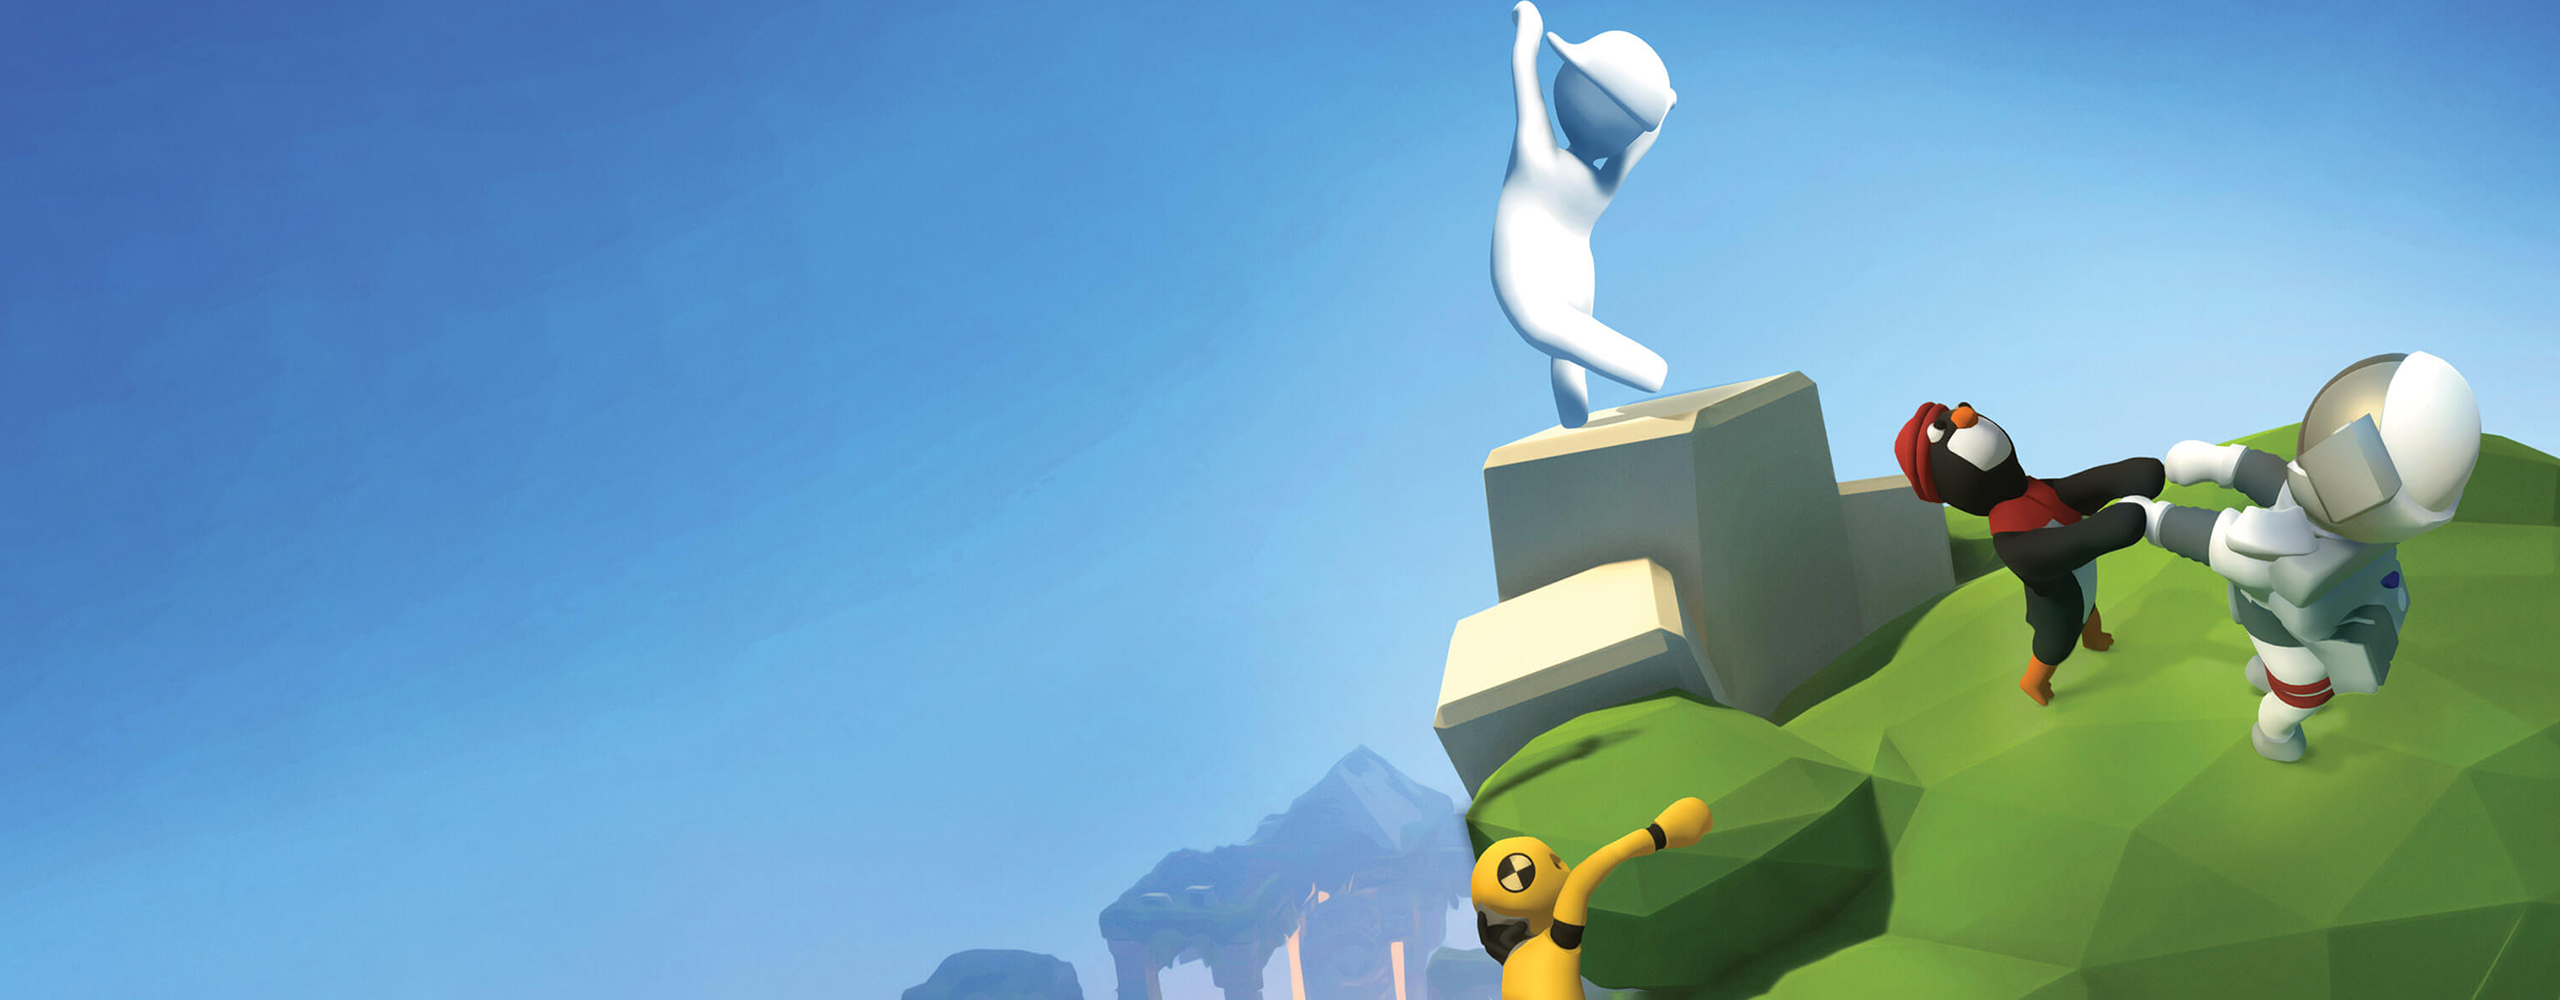 Golf and City levels arrive in Human Fall Flat!